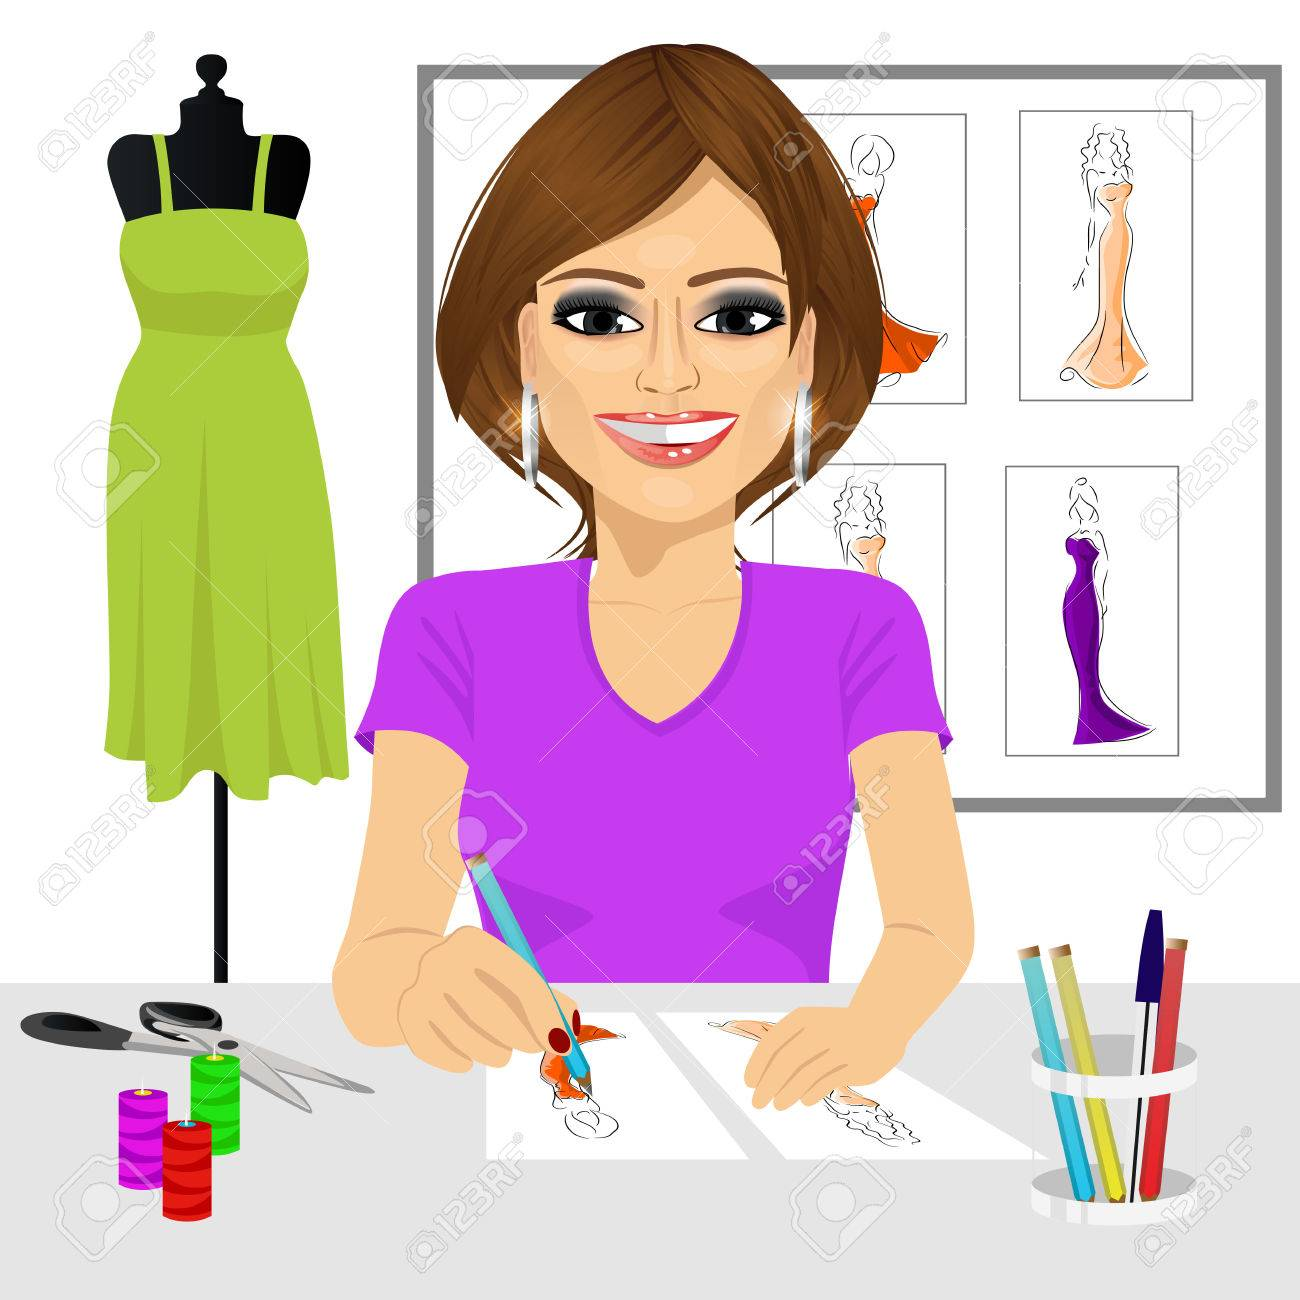 Friendly Young Latin Fashion Designer Drawing Dress Design Sketches Royalty Free Cliparts Vectors And Stock Illustration Image 49176567